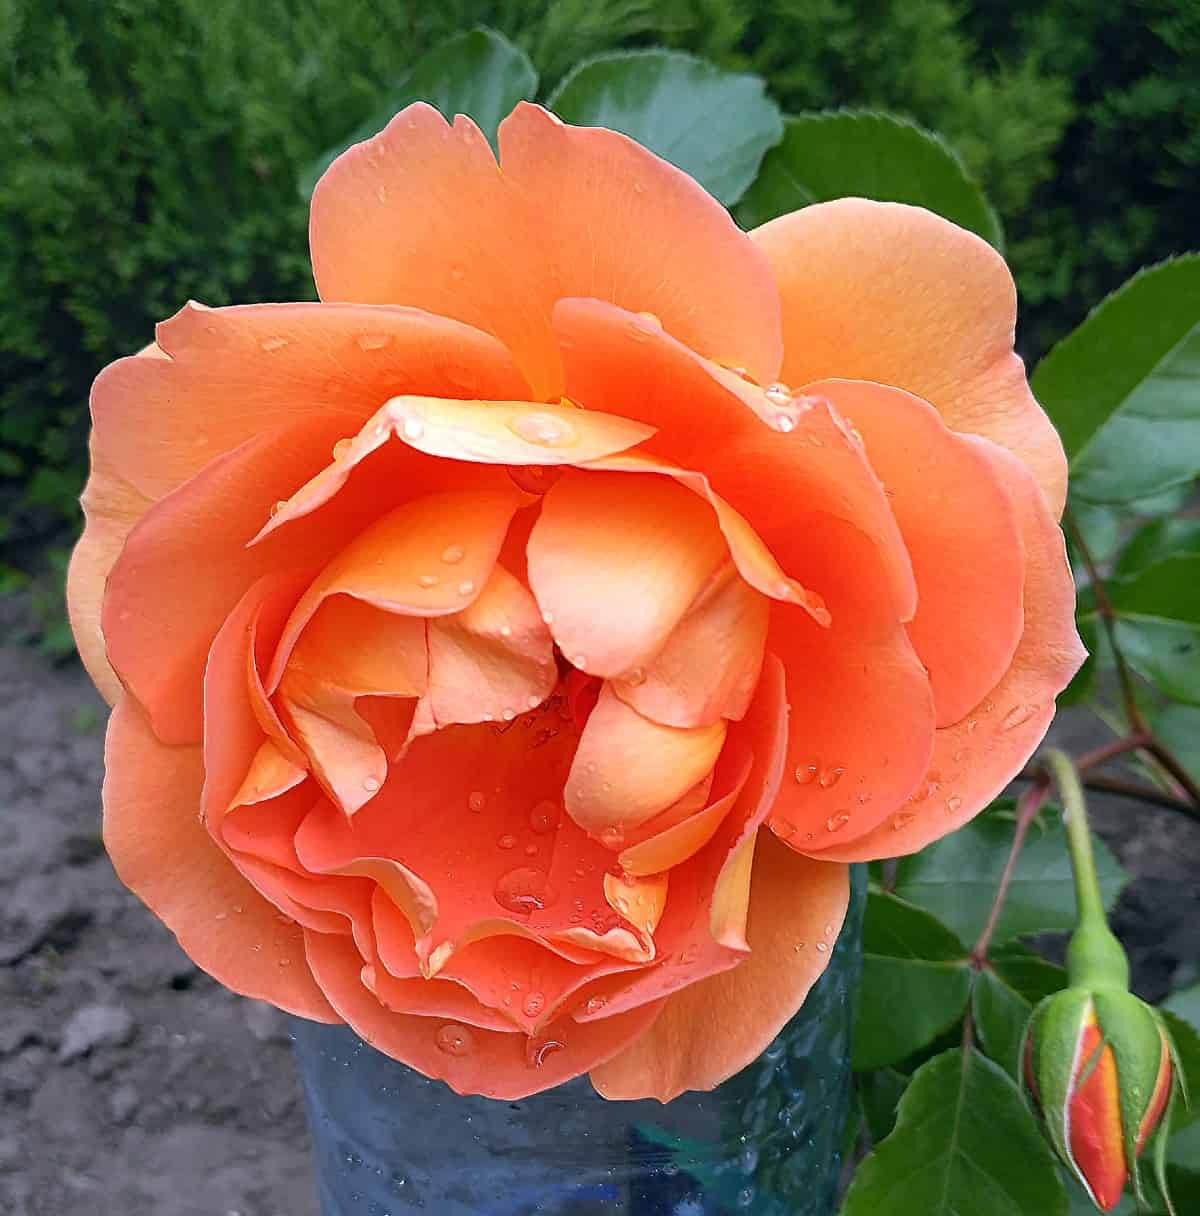 The Pat Austin rose is drought tolerant and smells like tea.